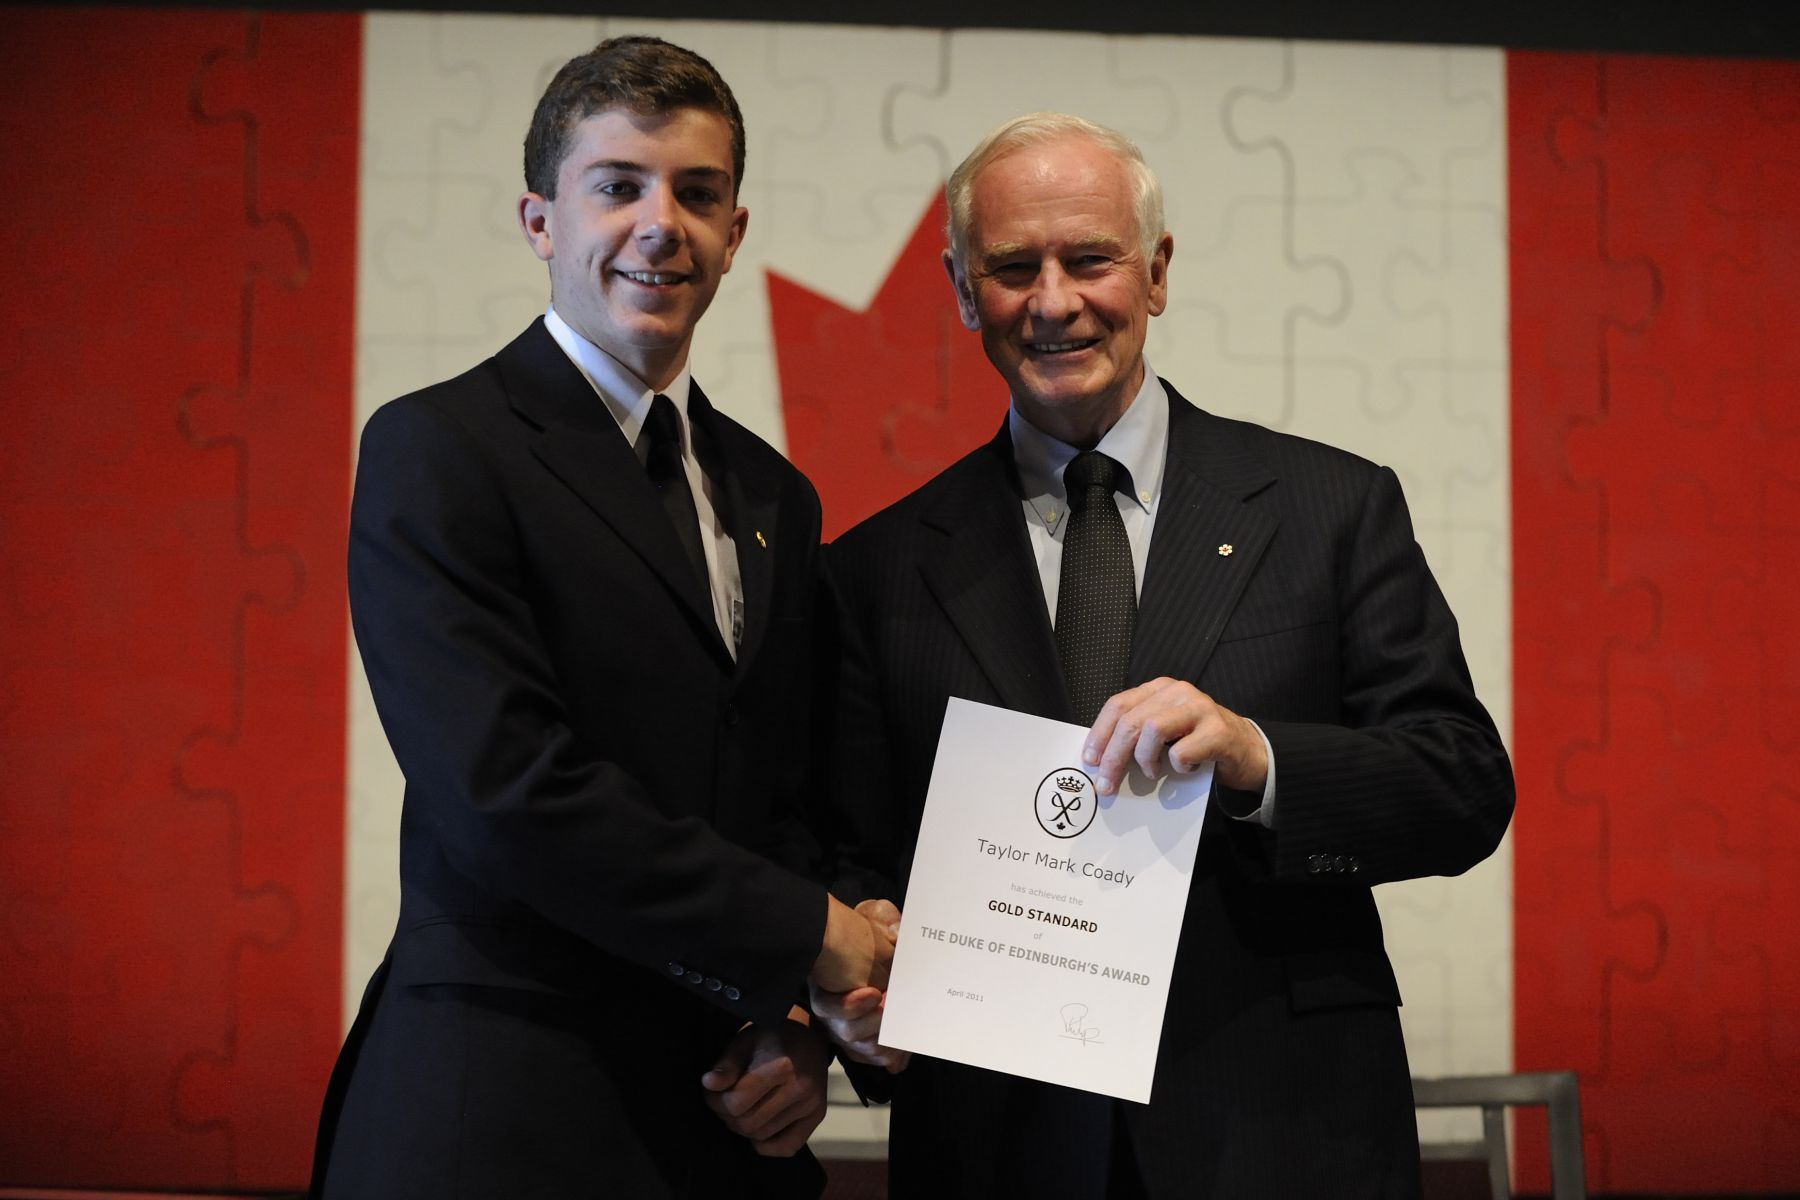 The Duke of Edinburgh Award is a self-development program available to all young people between the ages of 14-25. The award encourages youth to be active, to participate in new activities, and to pursue current interests in four different ways: Community Service, Skills Development, Physical Fitness, and Expeditions and Exploration.